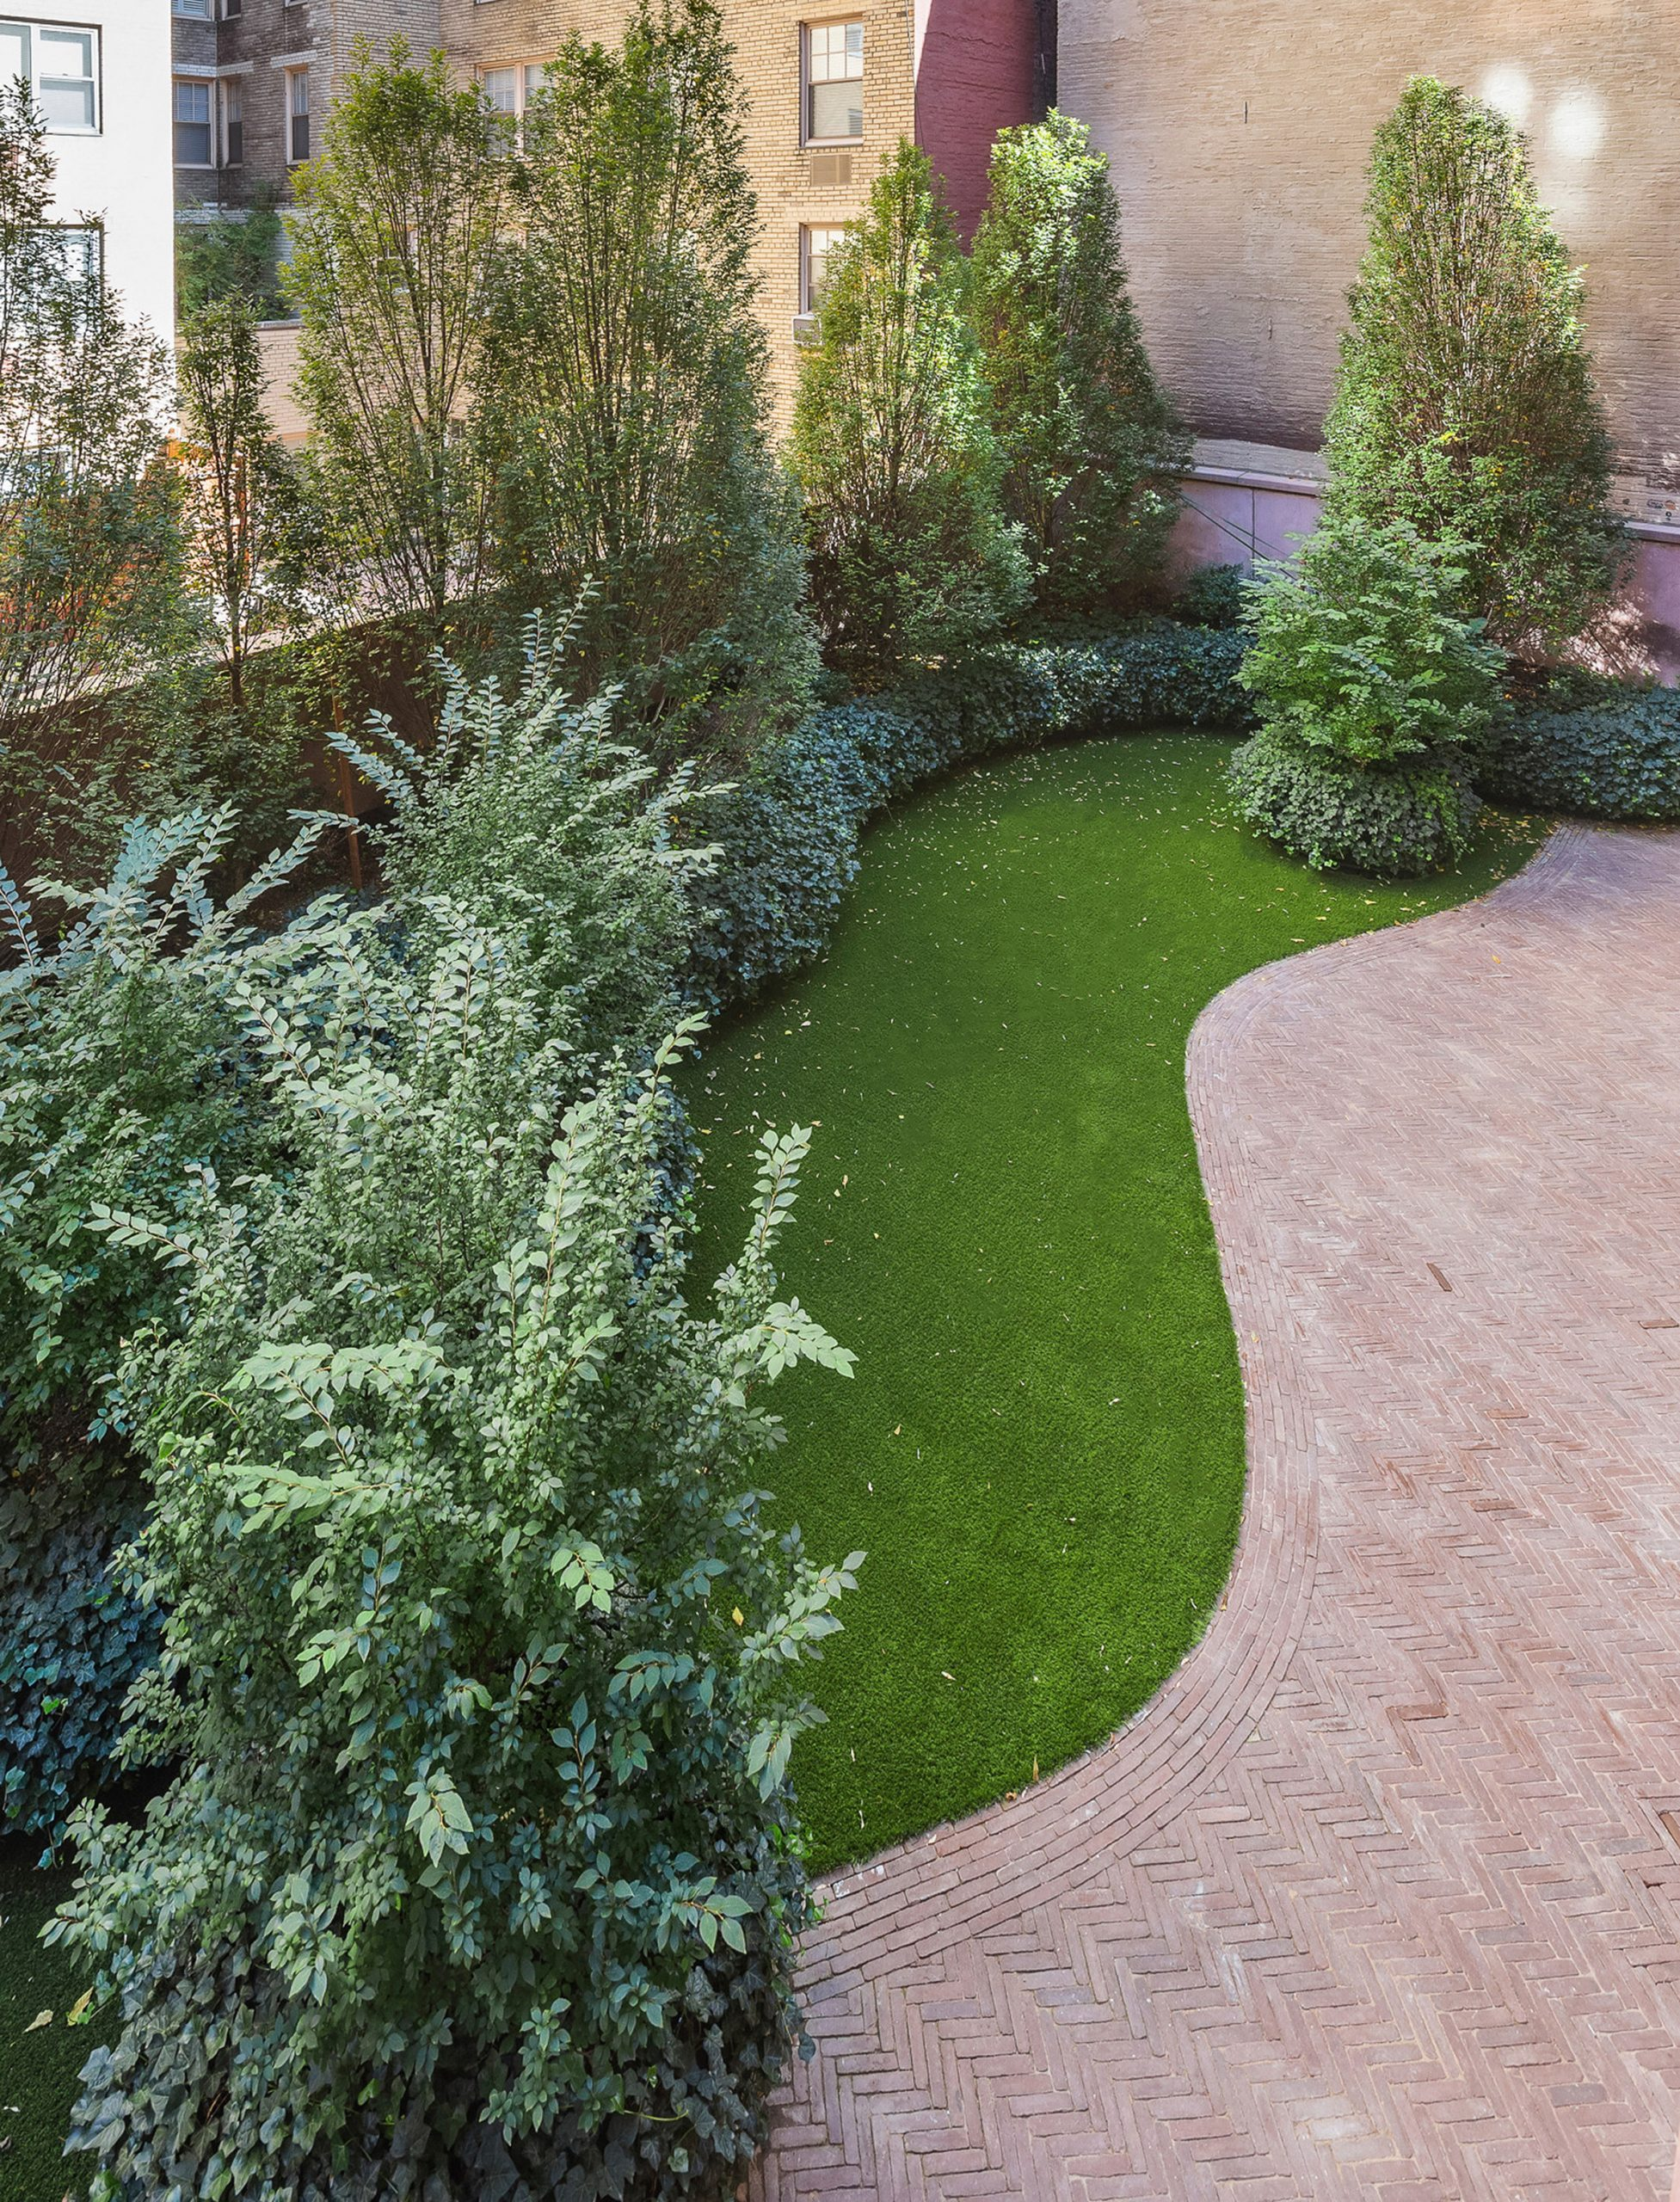 Peter Wirtz did the landscape gardening for the apartments